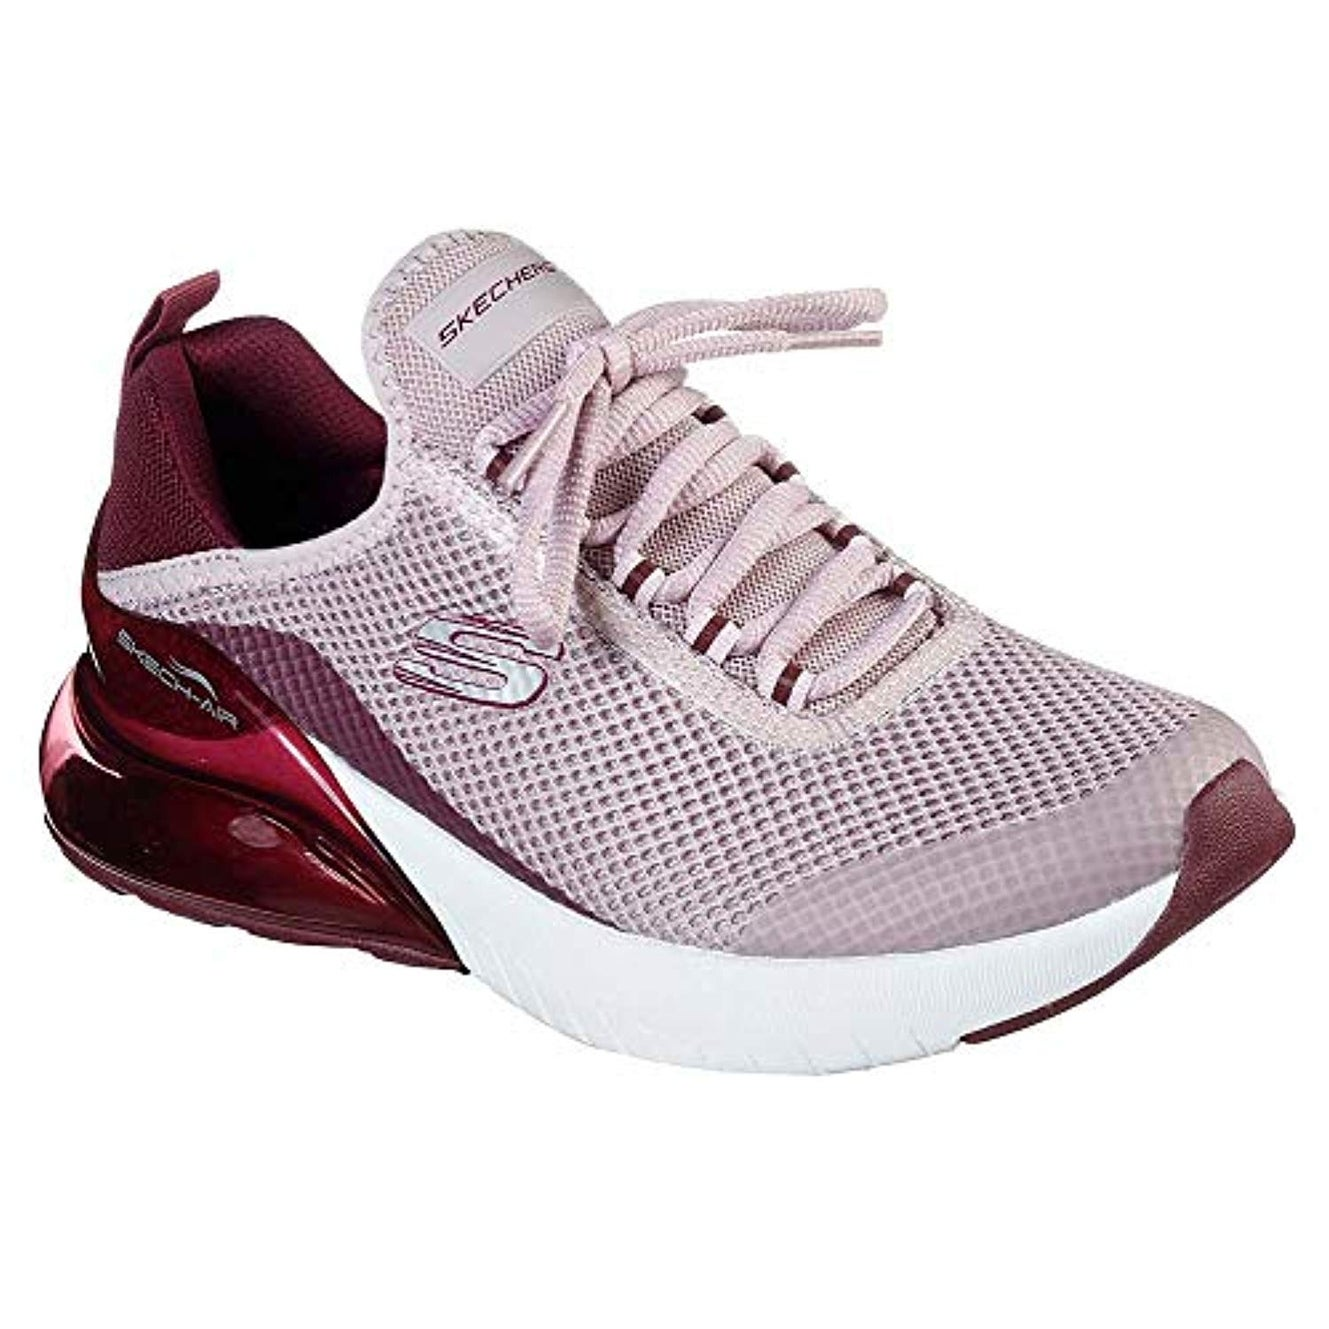 Skechers Skech Air Stratus Sparkling Wind Women's Lifestyle Shoes